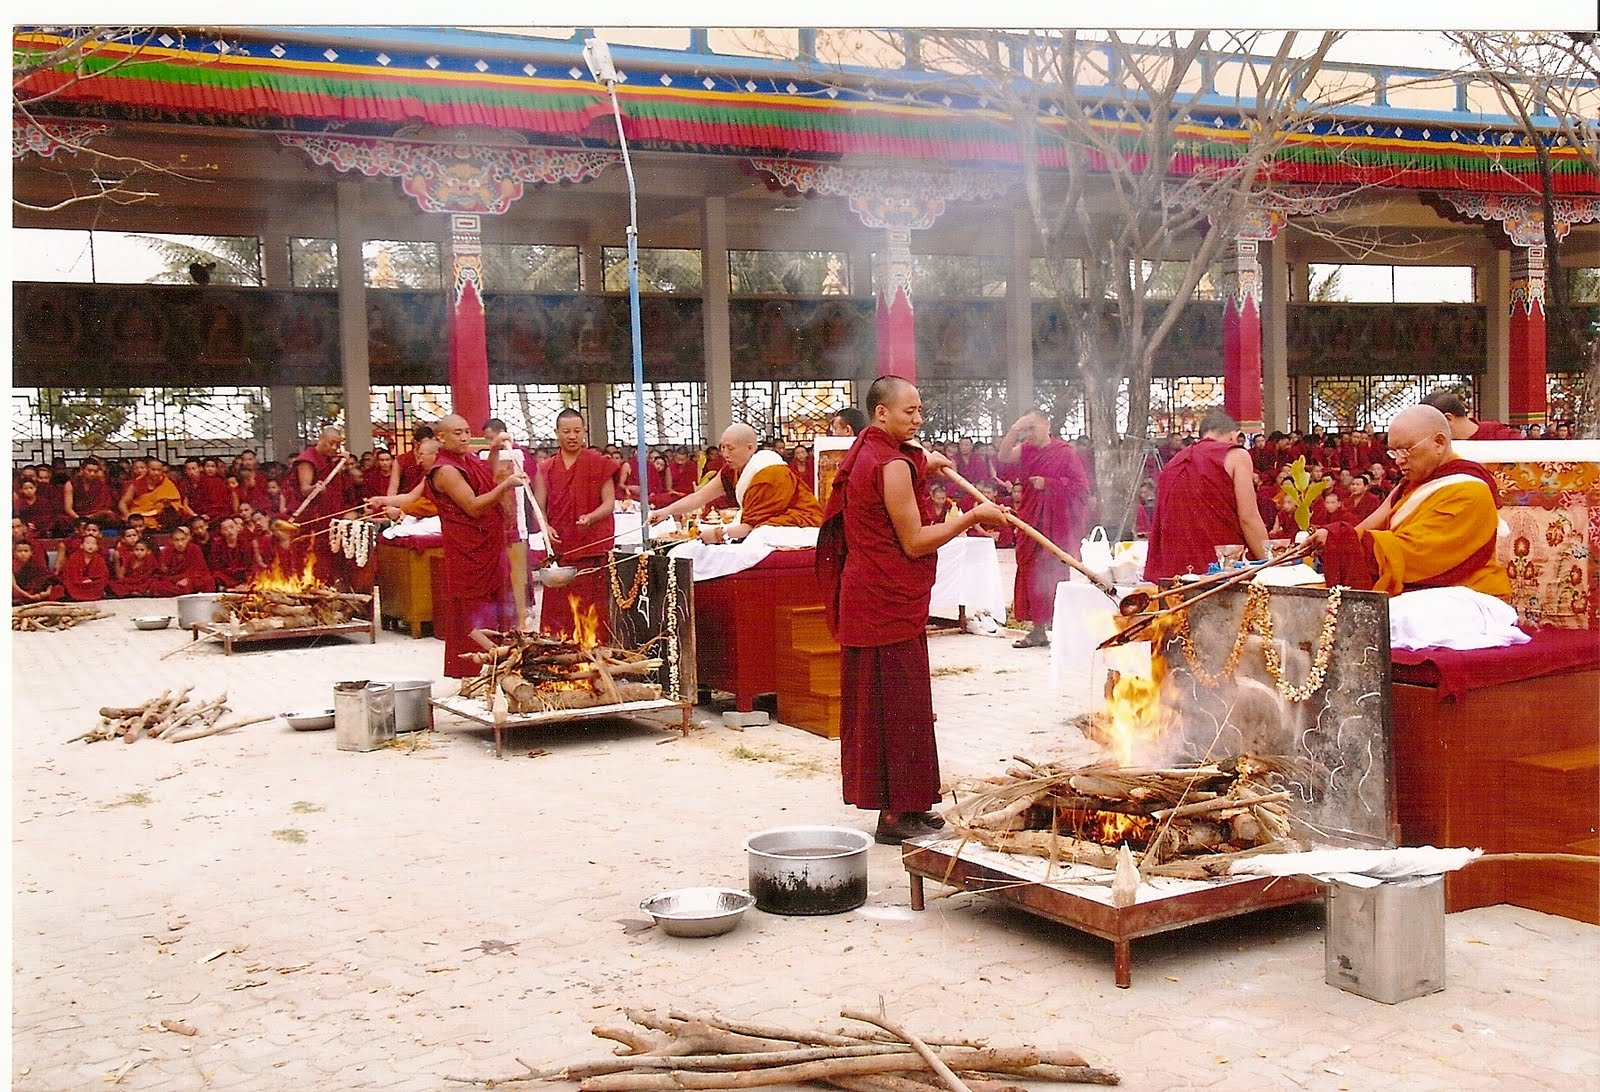 Lama Zopa Rinpoche and high Lamas doing fire pujas at Sera Je Monastery